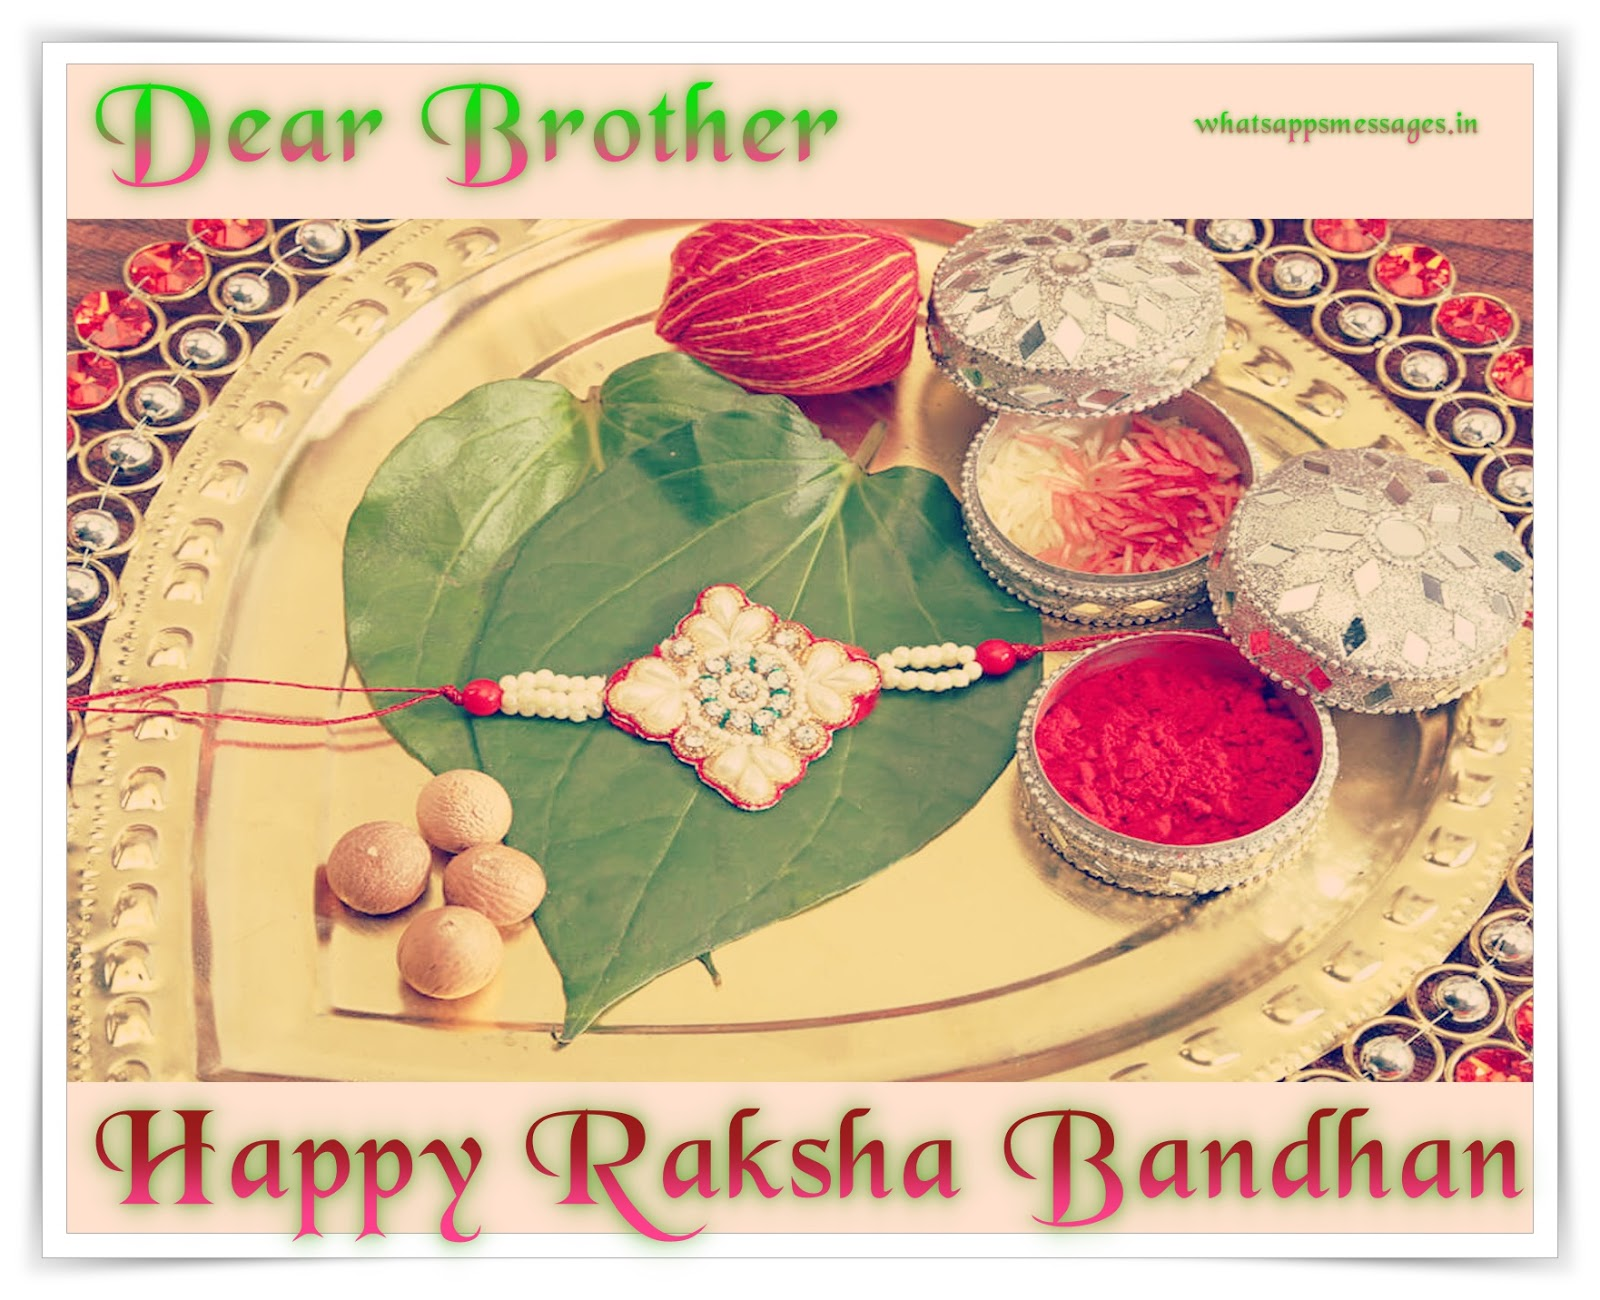 Funny raksha bandhan shayarismsmessages quotes whatsapp messages funny raksha bandhan shayari altavistaventures Choice Image